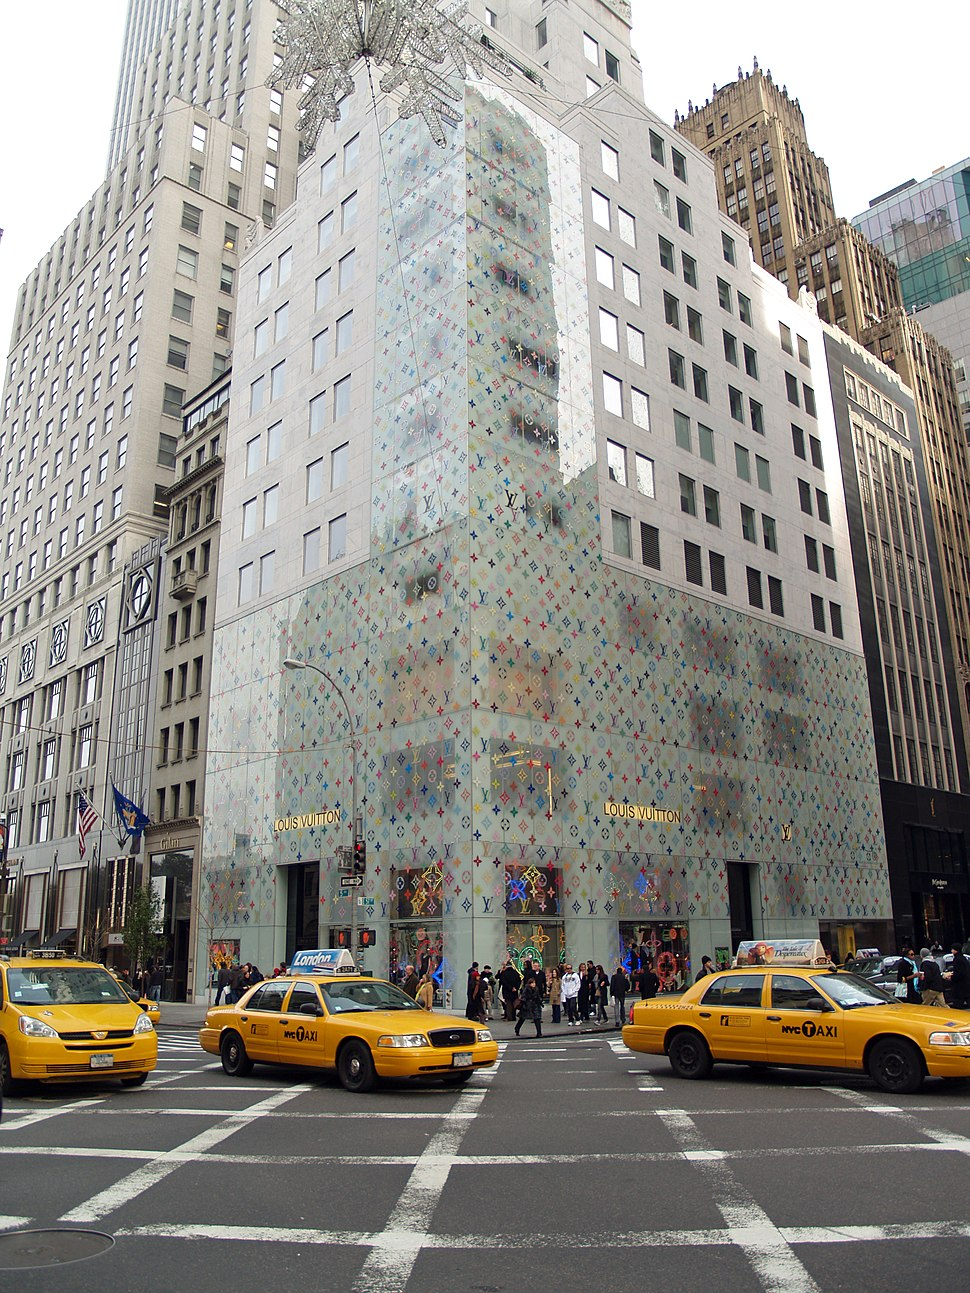 Louis Vuitton Fifth Avenue New York City